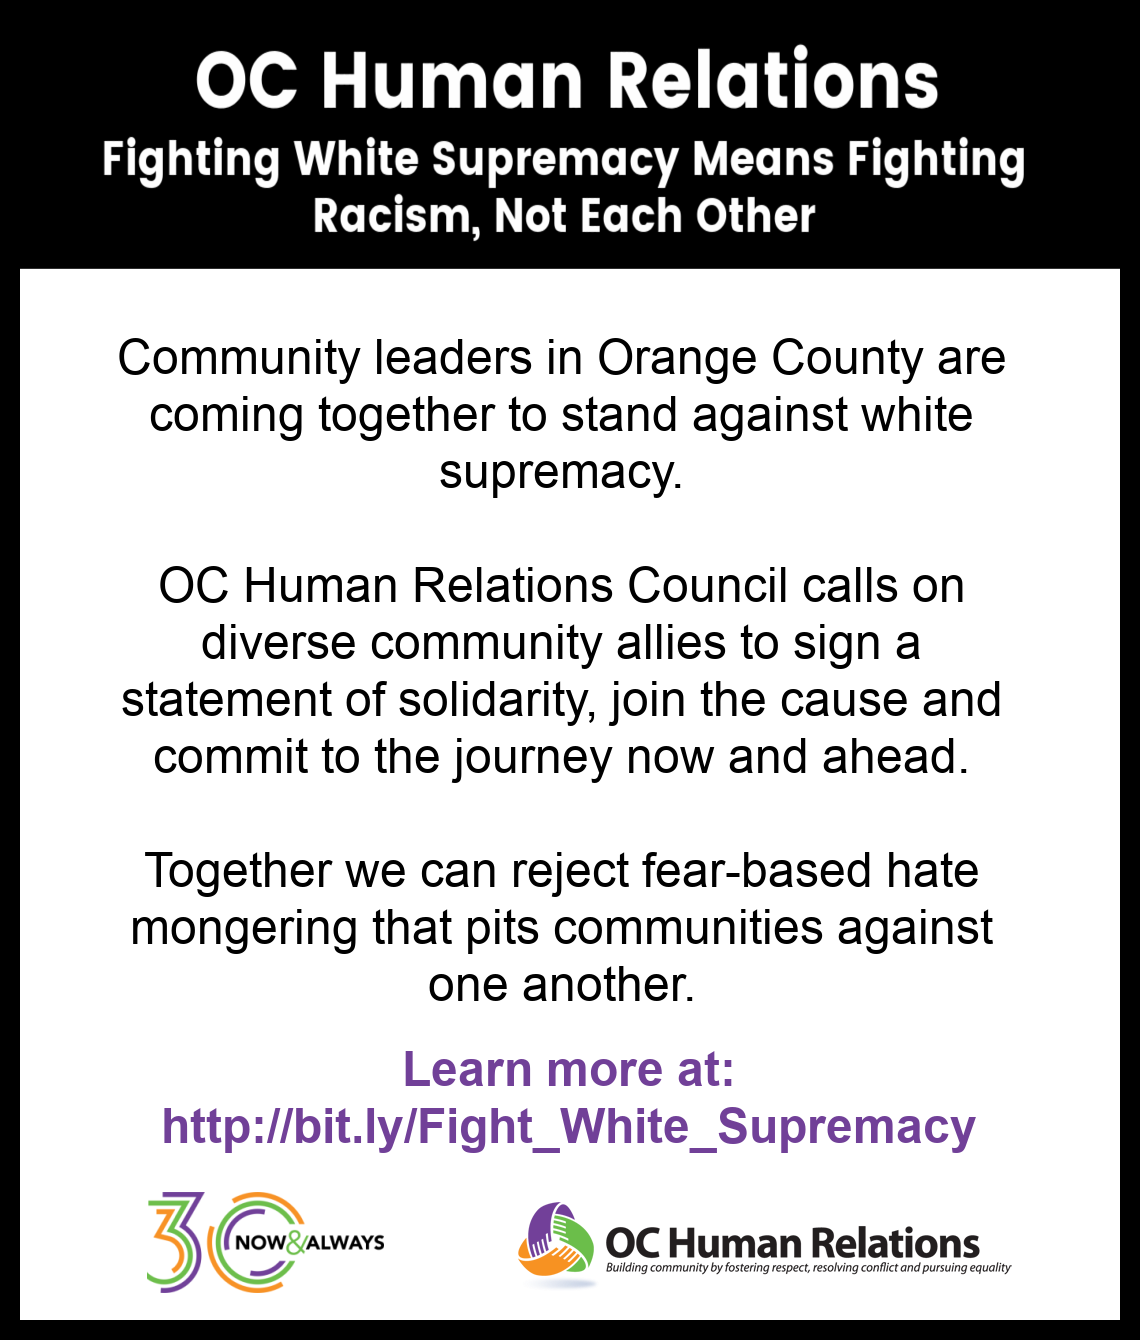 Fighting White Supremacy Means Fighting Racism, Not Each Other